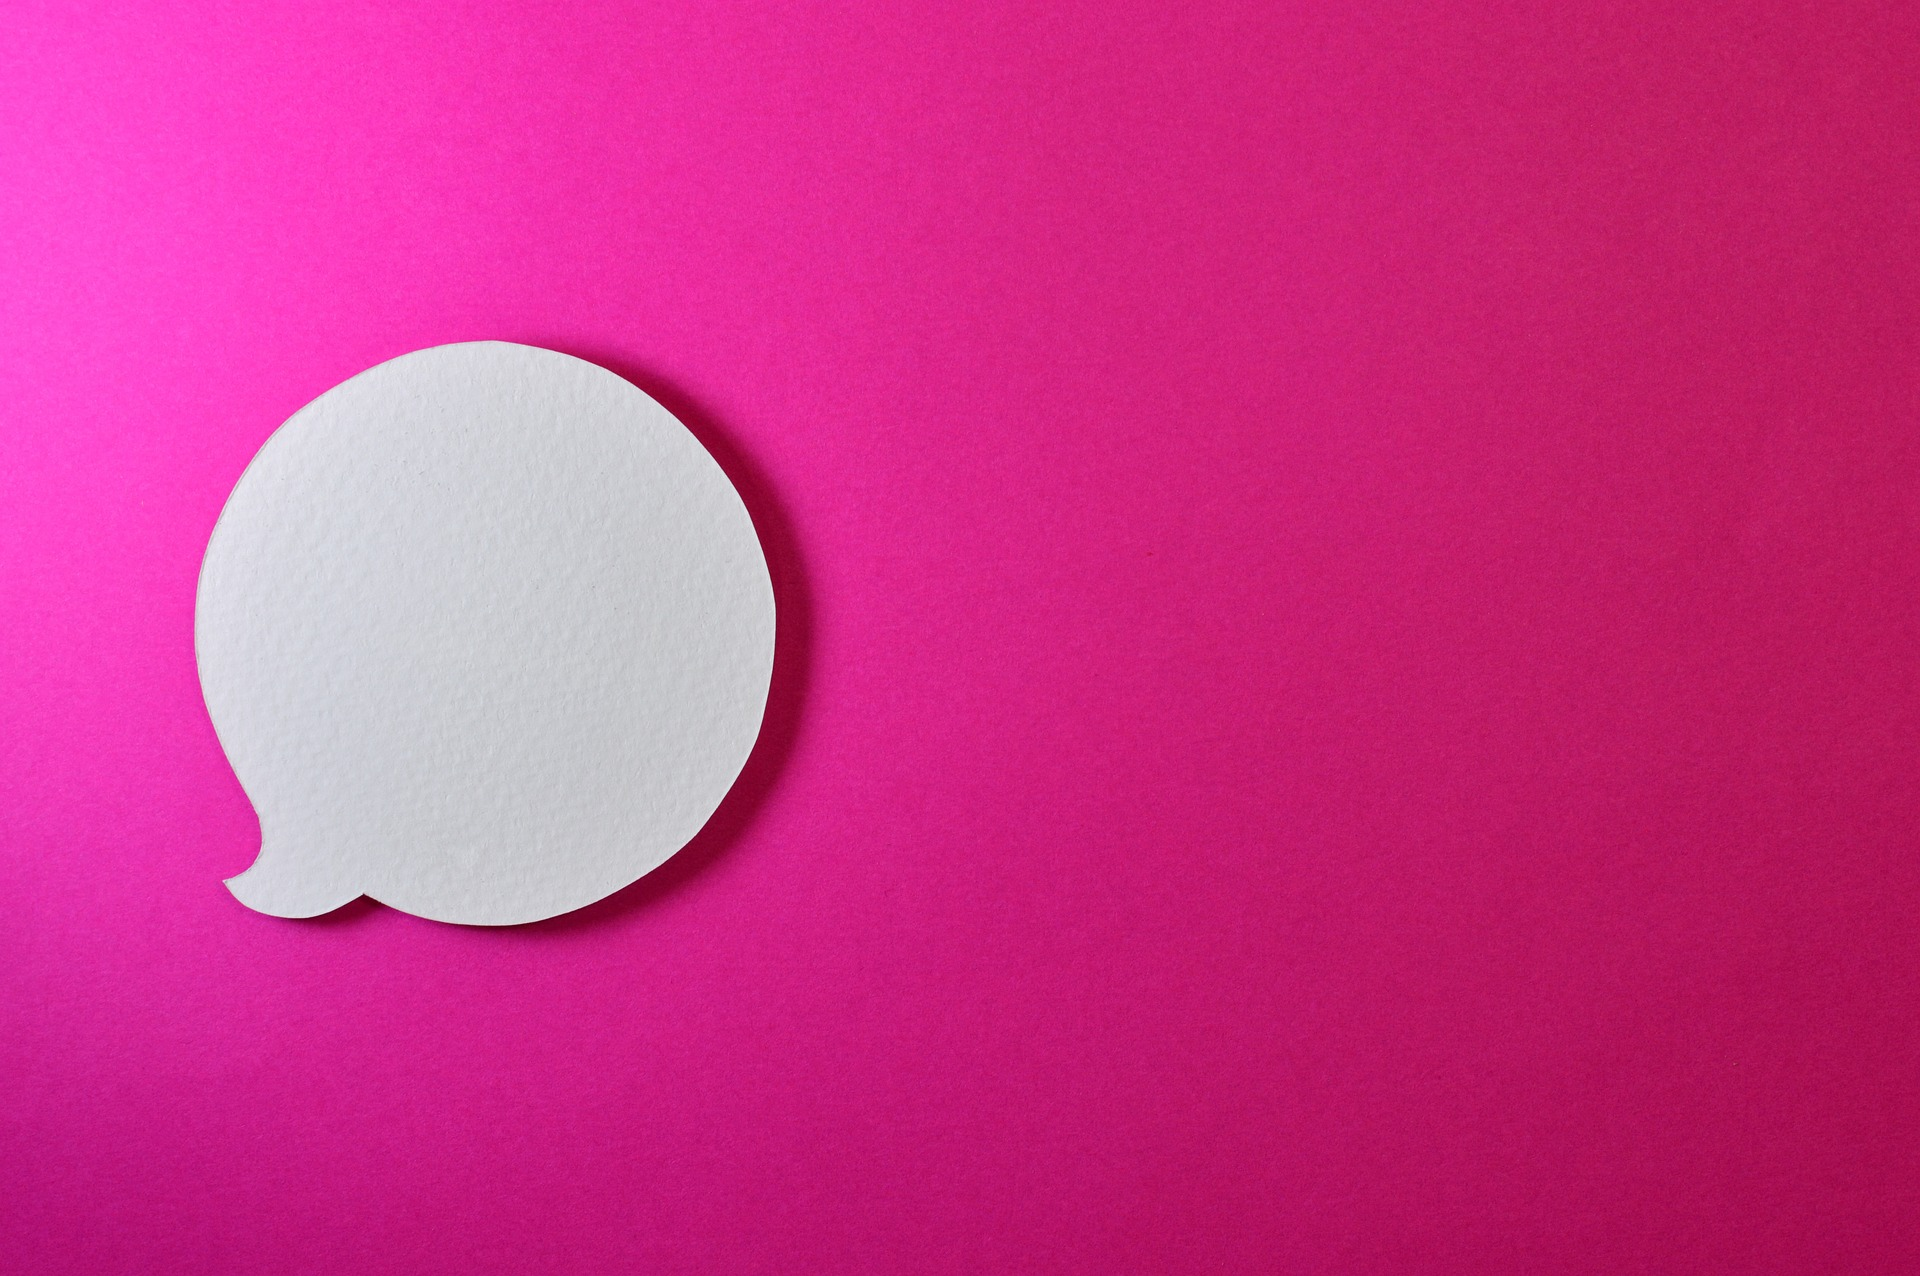 a conversation bubble on a pink background